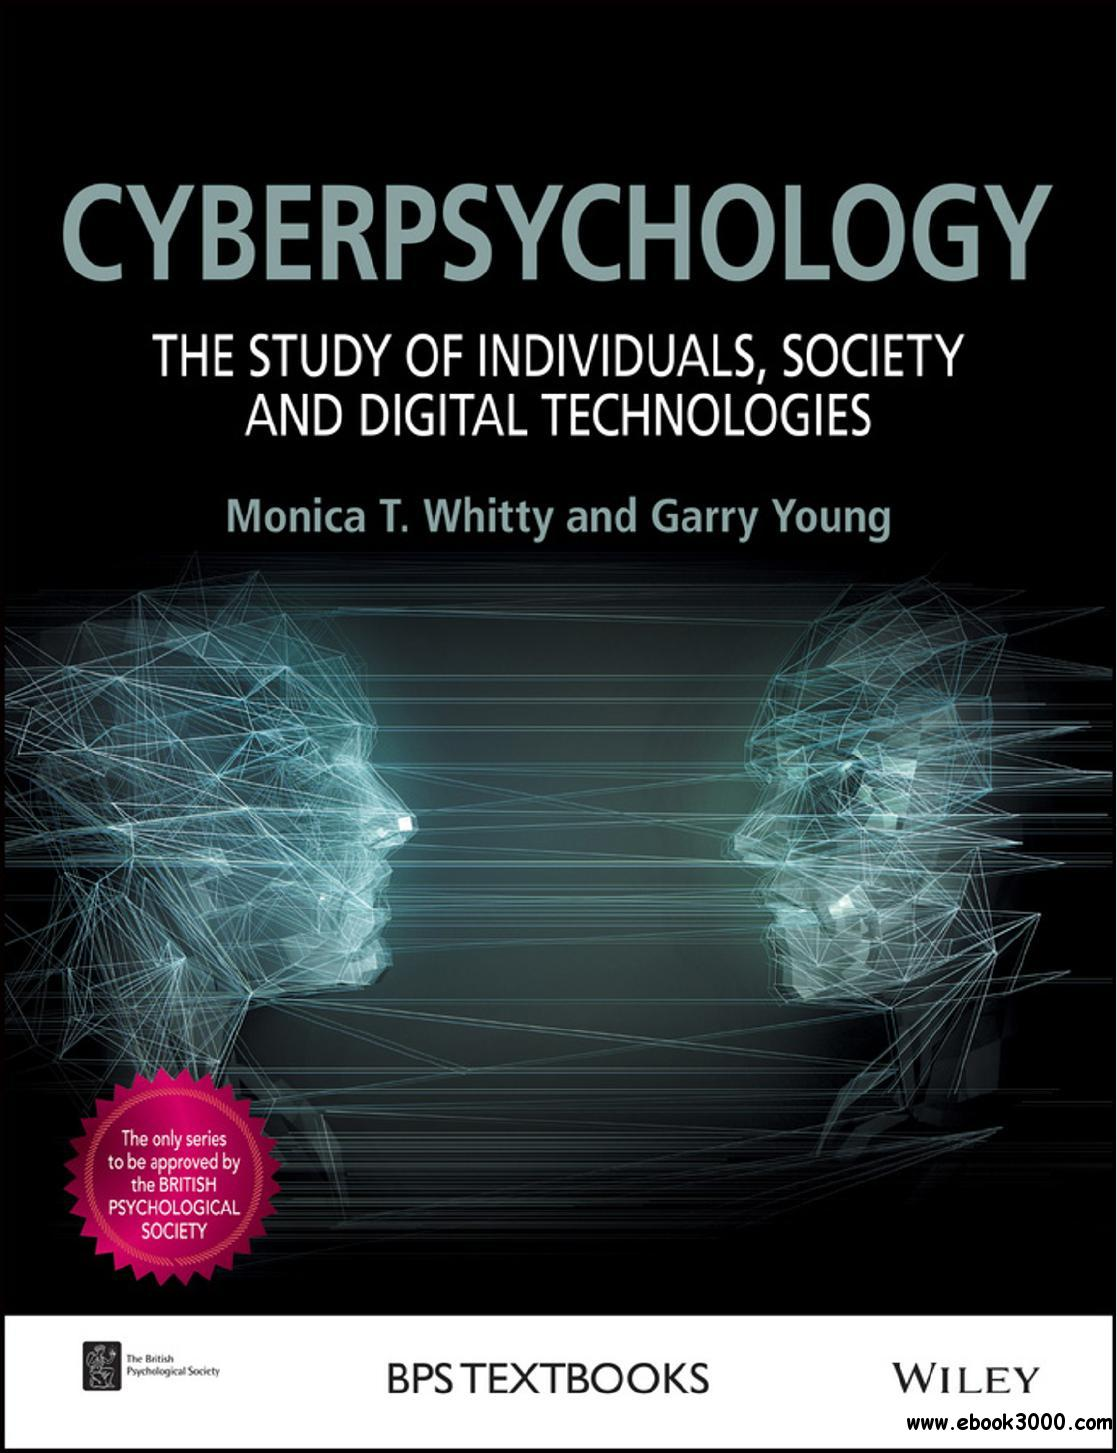 Cyberpsychology: The Study of Individuals, Society and Digital Technologies (BPS Textbooks in Psychology)